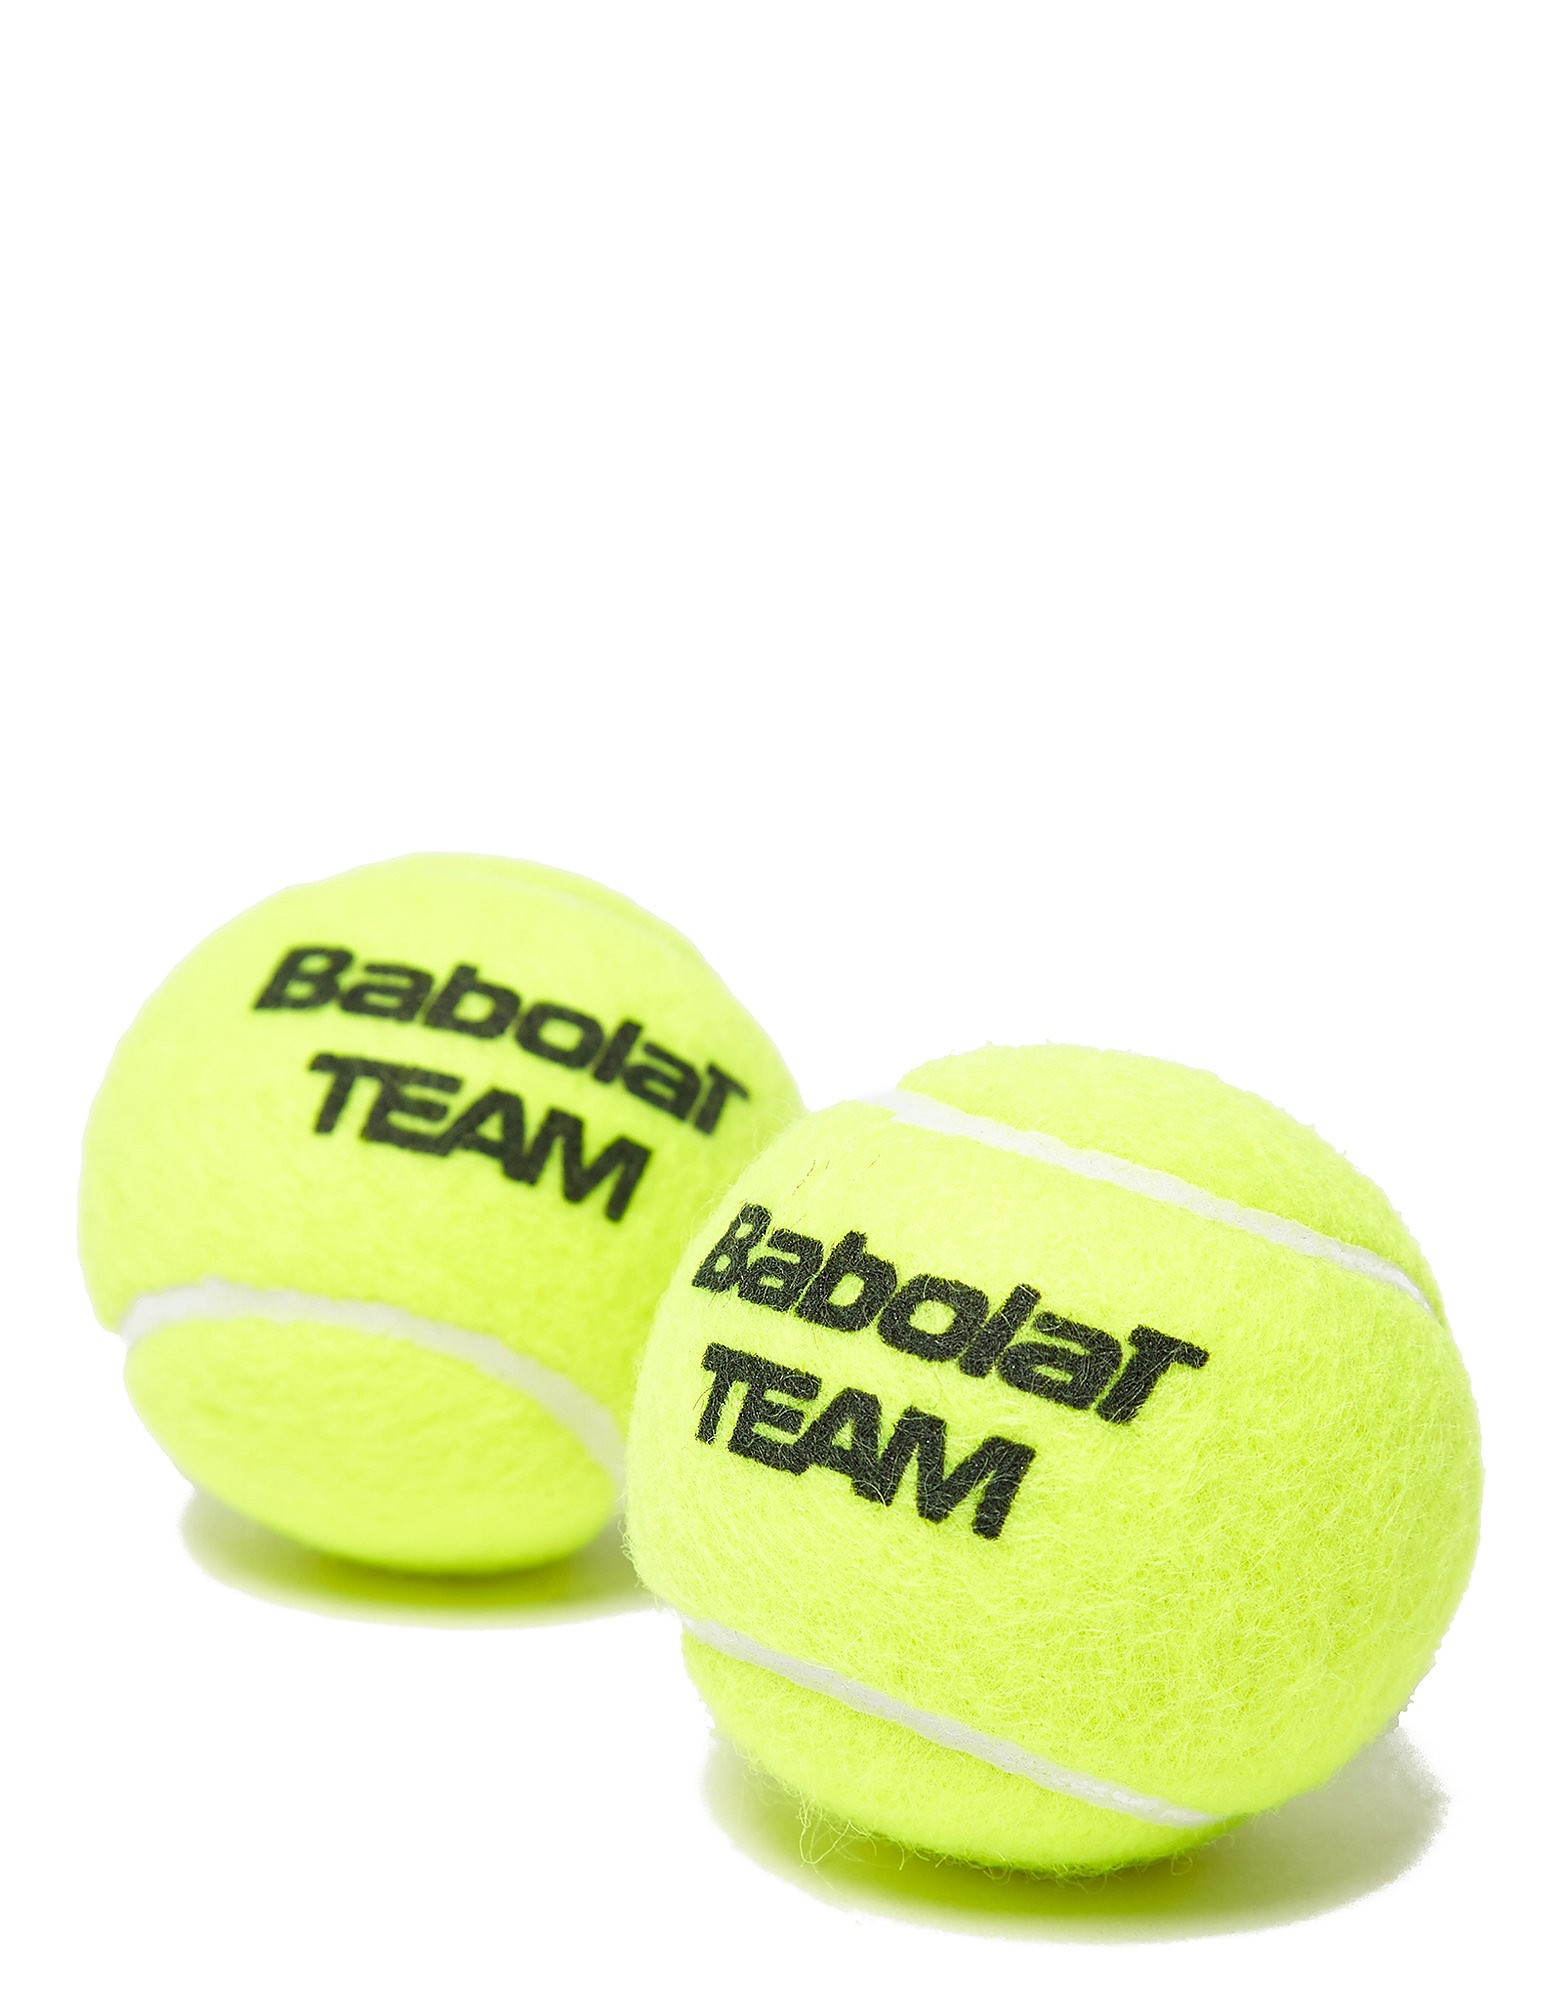 Babolat Team Tennis Balls (4 can)